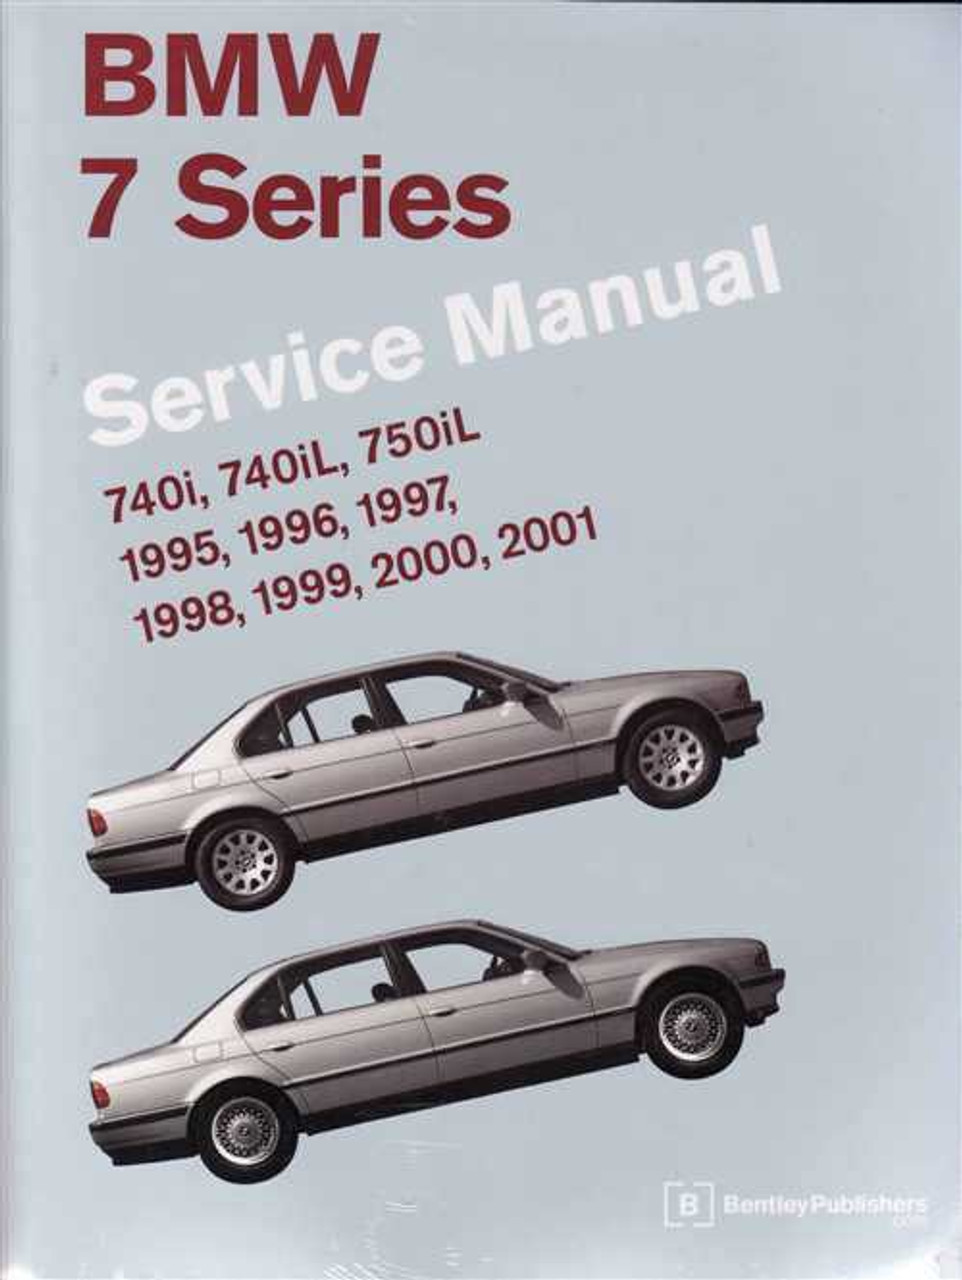 hight resolution of b13772 bmw service manual resized 77443 1339460178 jpg c 2 imbypass on